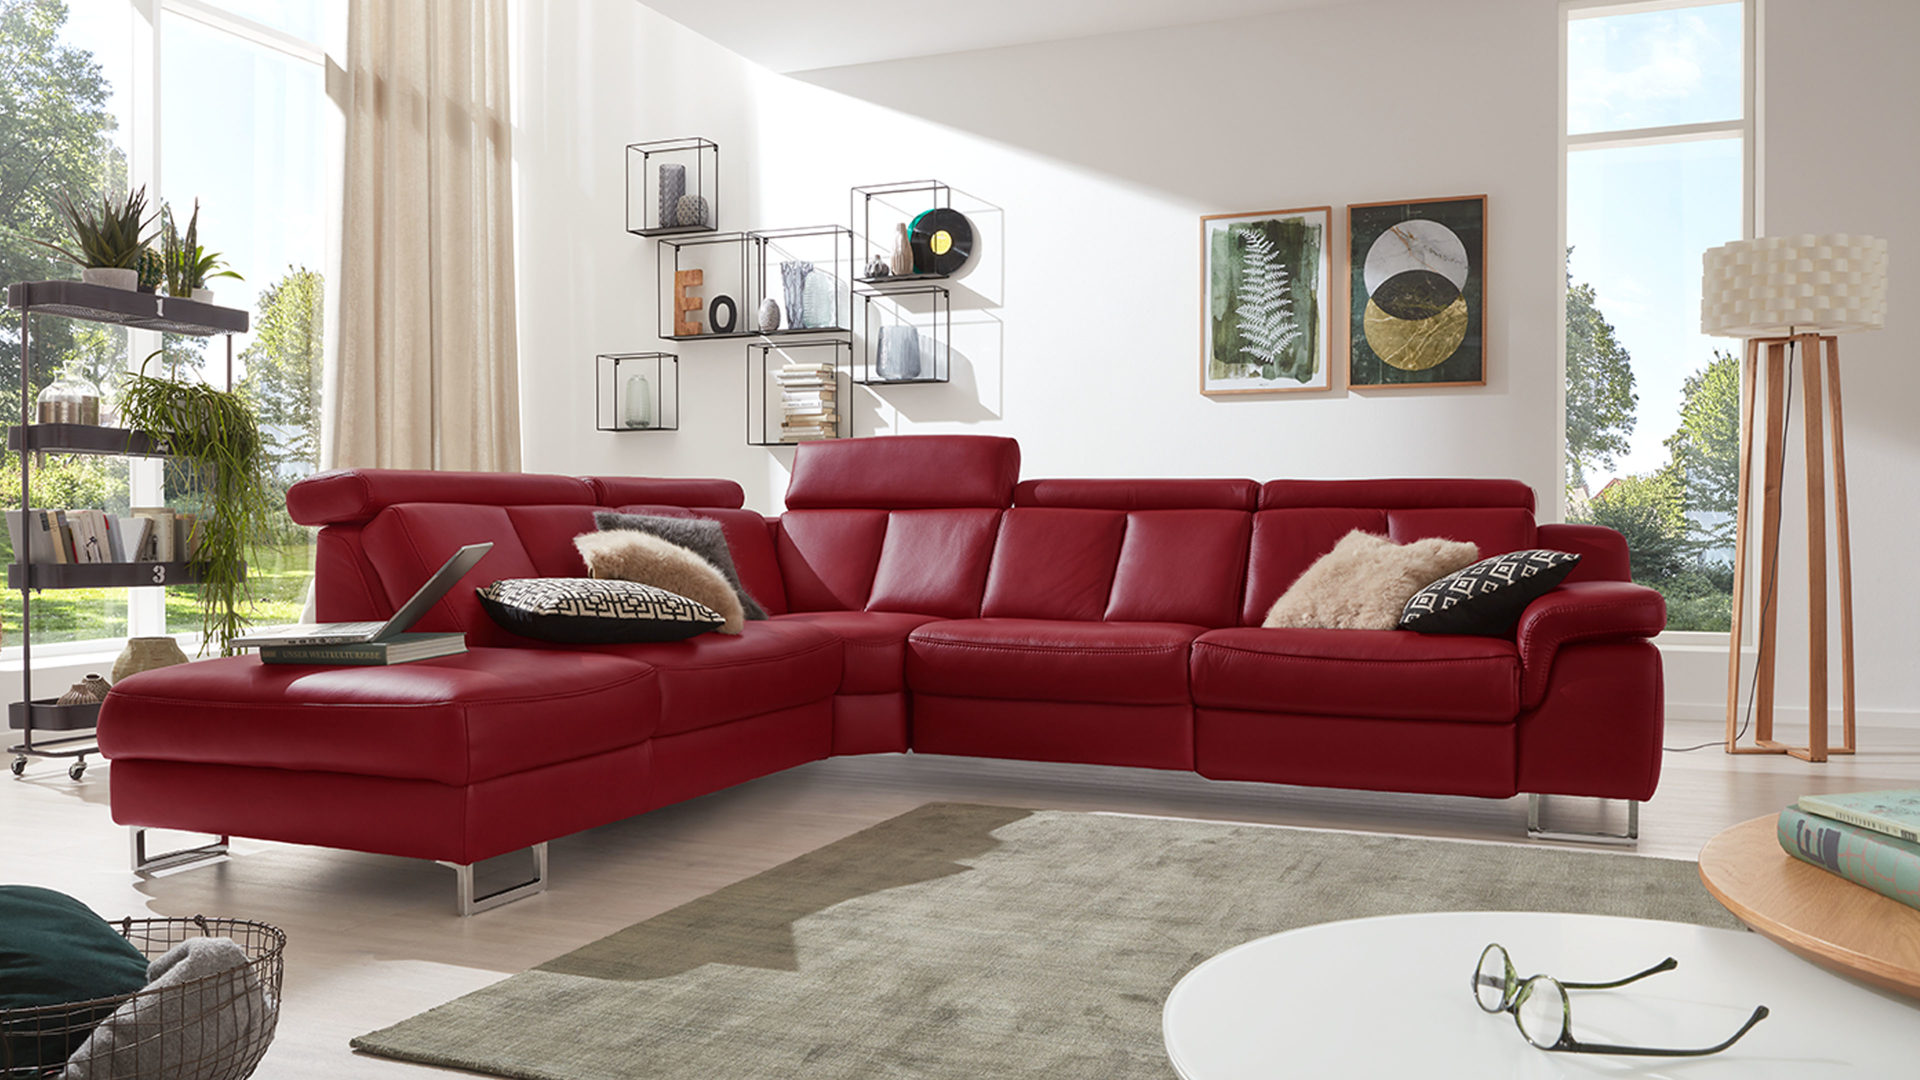 Ecksofa Interliving aus Leder in Rot Interliving Sofa Serie 4050 – Eckkombination rotes LongLife-Leder Cloudy red & Chromfüße – Schenkelmaß ca. 261 x 300 cm